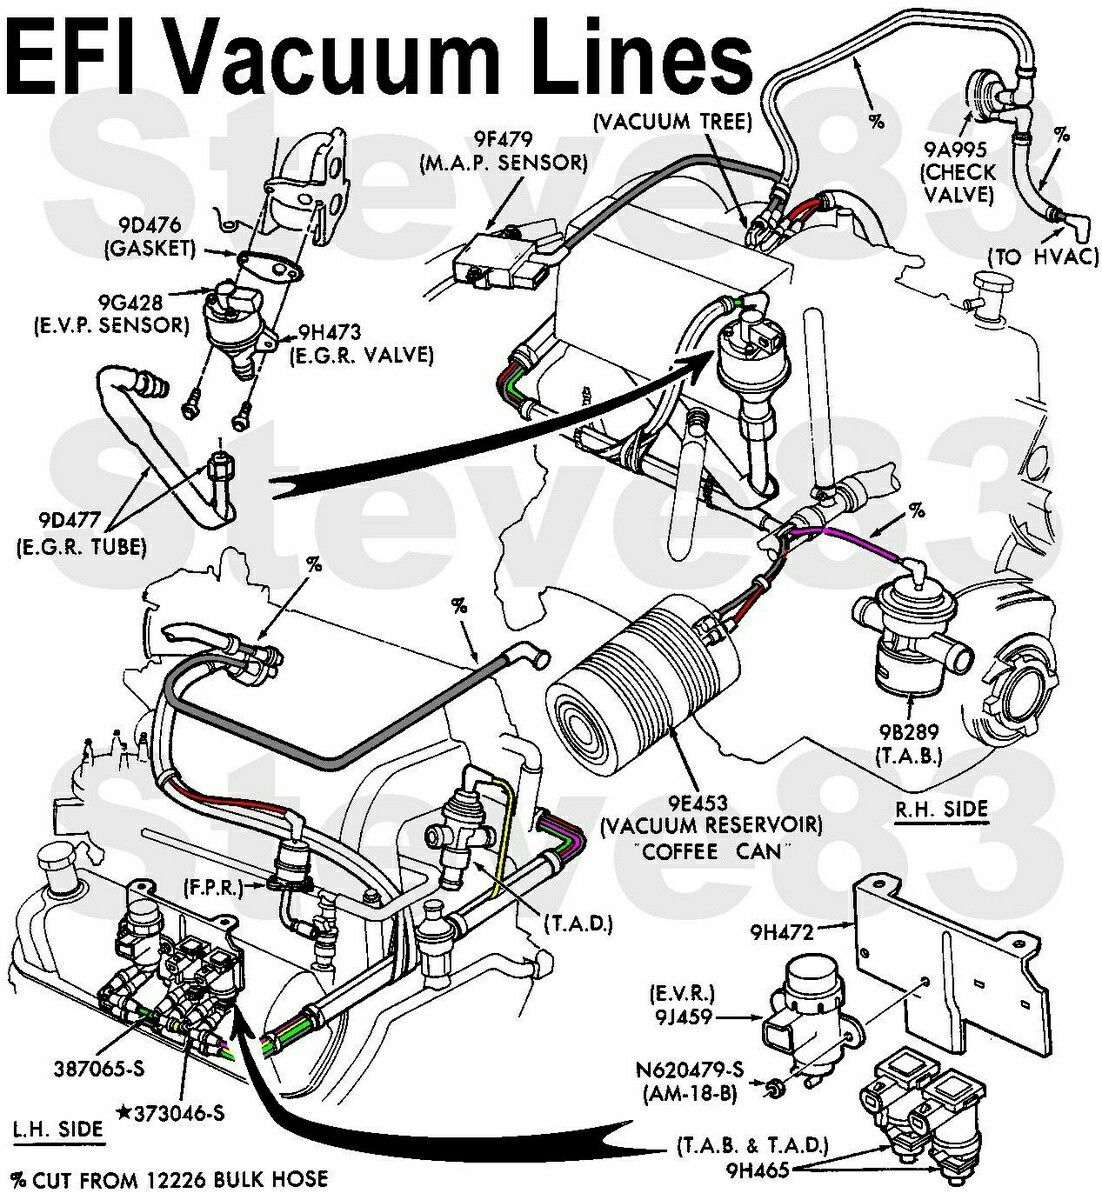 pin by jose zepeda on bike ford f150 xlt ford 351 1995 ford f150 ford f 150 cooling system diagram furthermore 1963 chevy pickup truck [ 1102 x 1200 Pixel ]